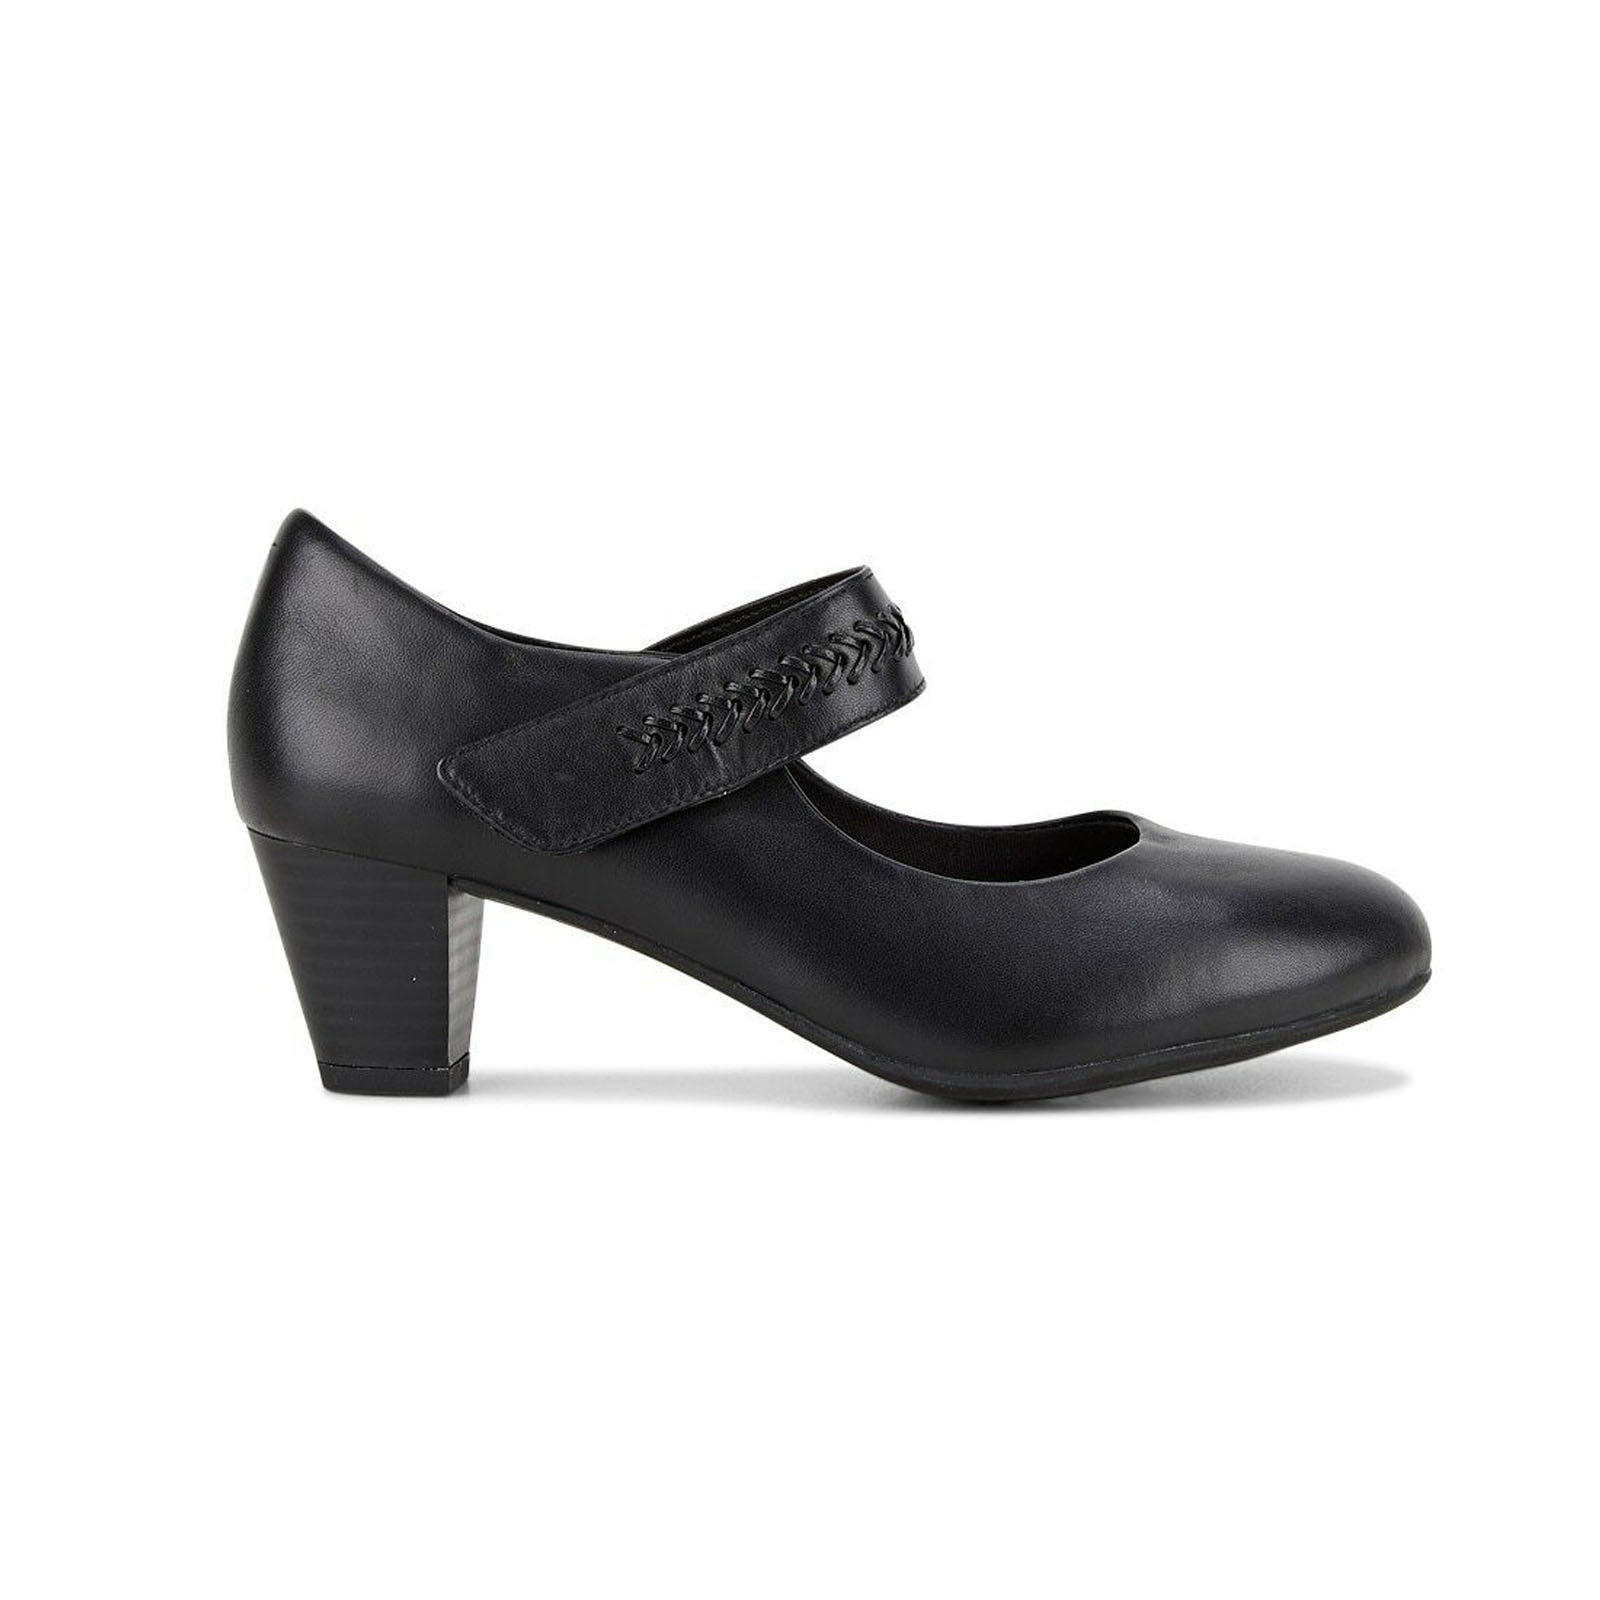 HUSH PUPPIES Cadence Mary Jane Heels Work Formal Strap Leather Shoes Black